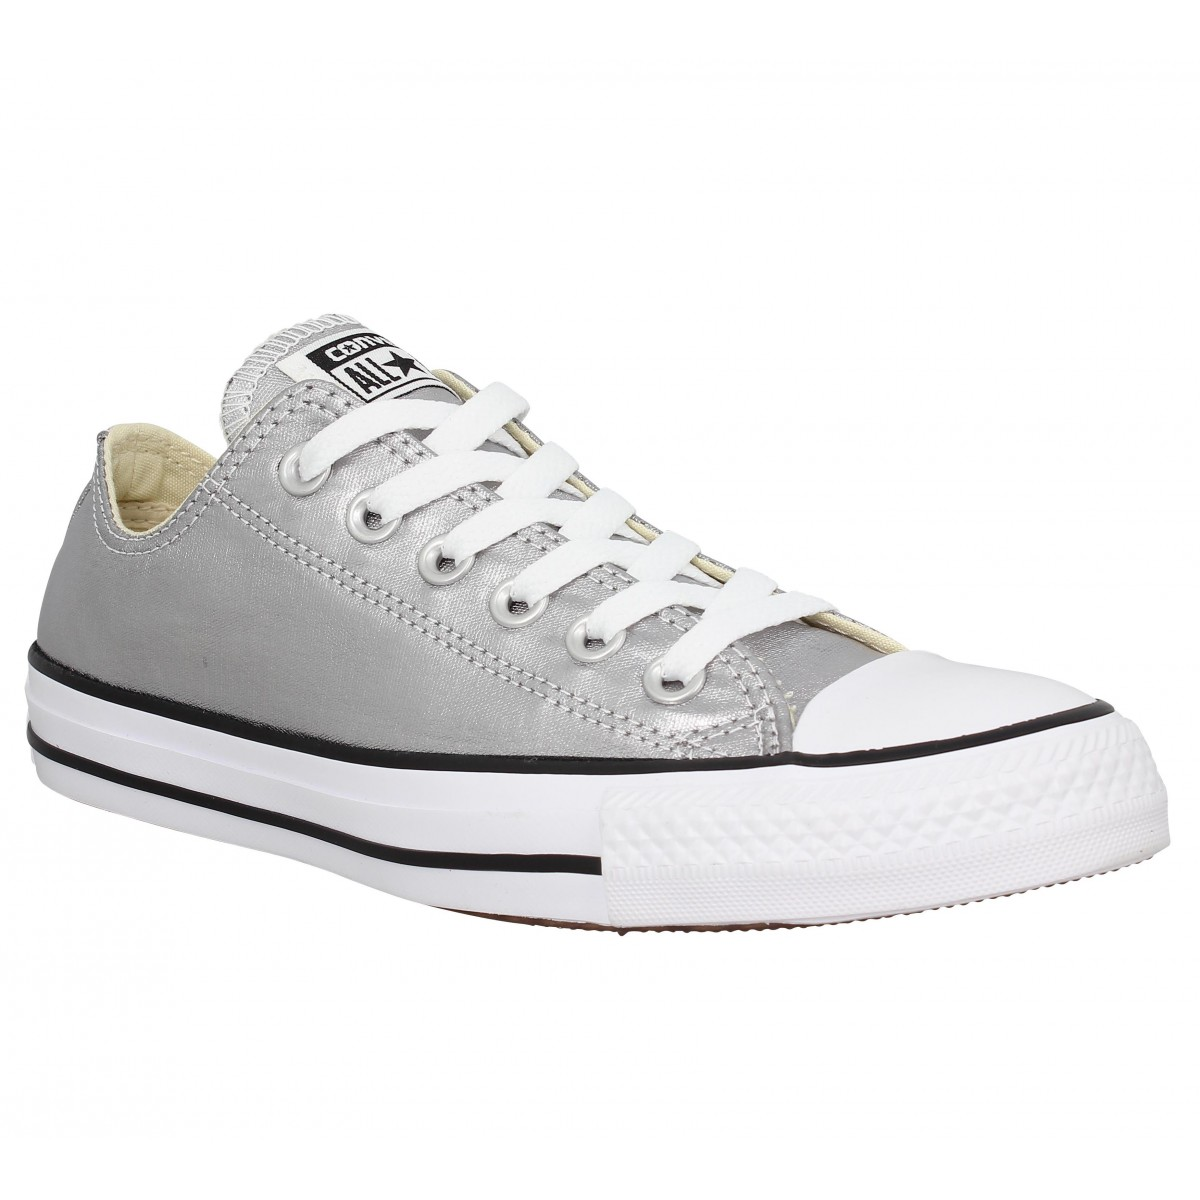 Baskets CONVERSE Chuck Taylor All Star toile Gun Metal